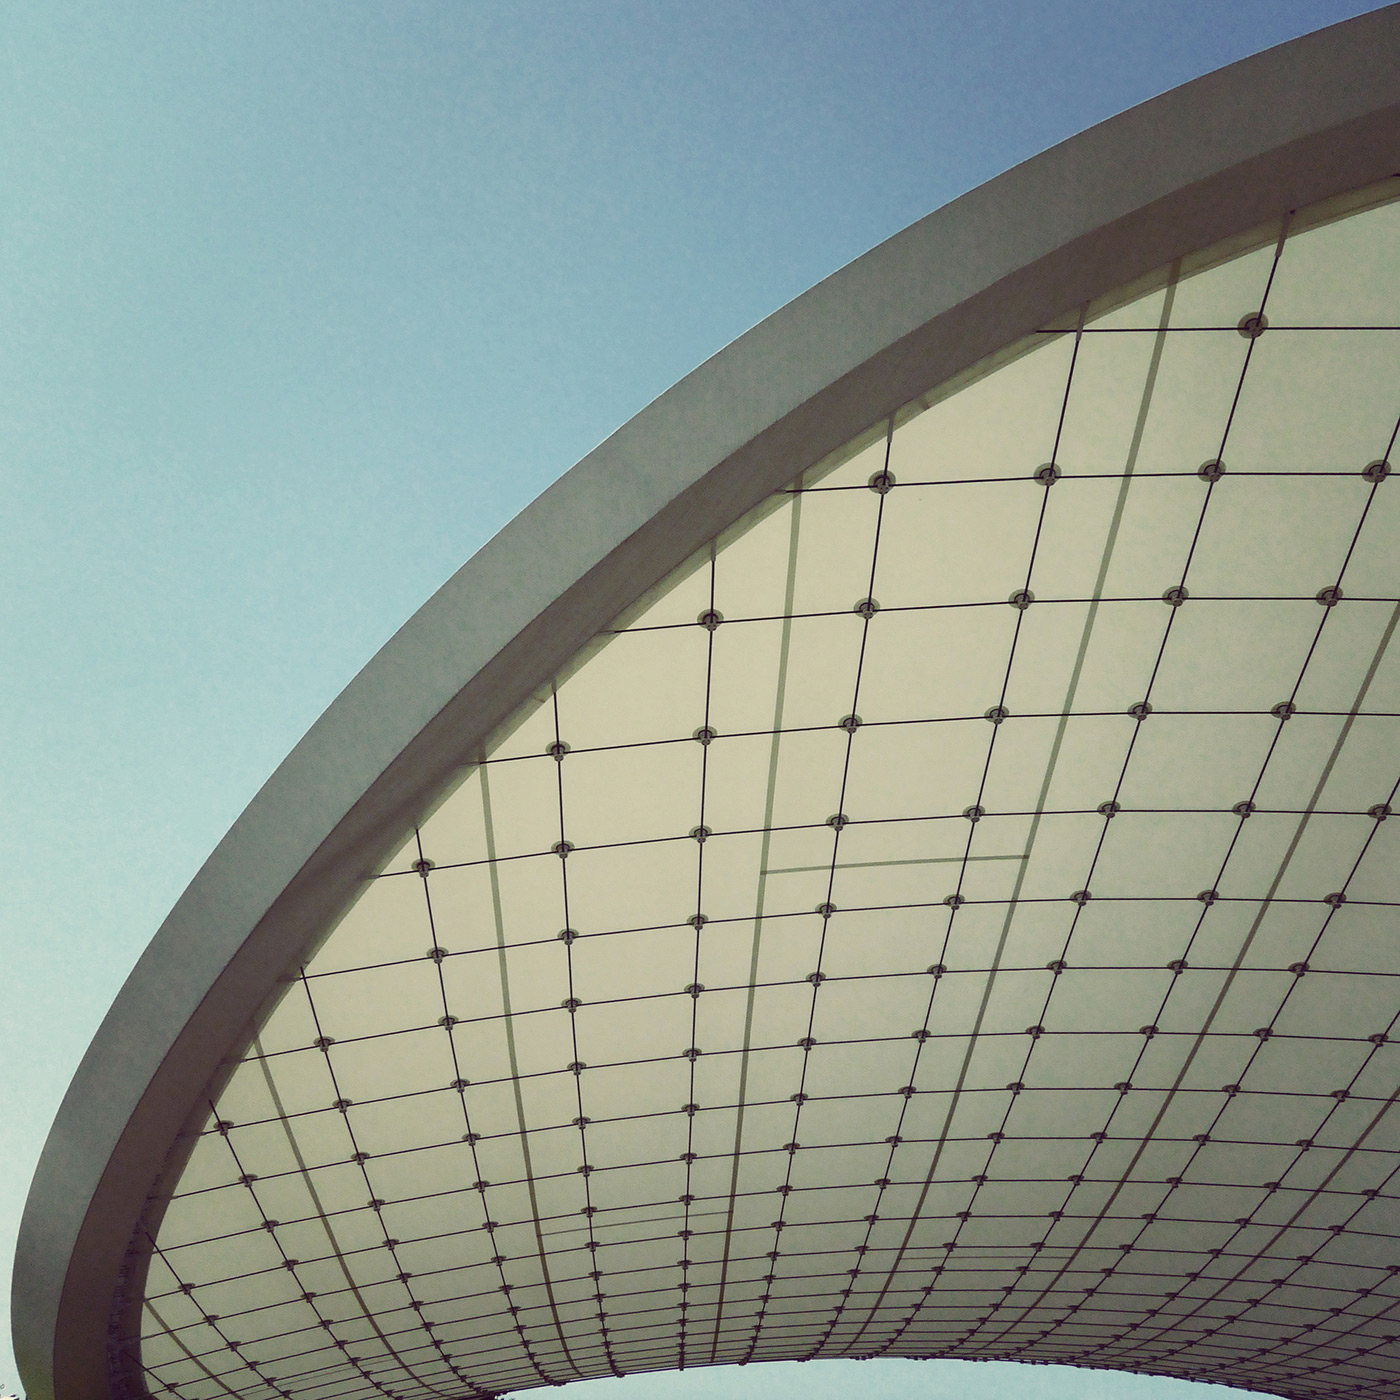 Autostadt Roof and Service Pavilion <br />Location: Wolfsburg, Germany <br />Architect: GRAFT